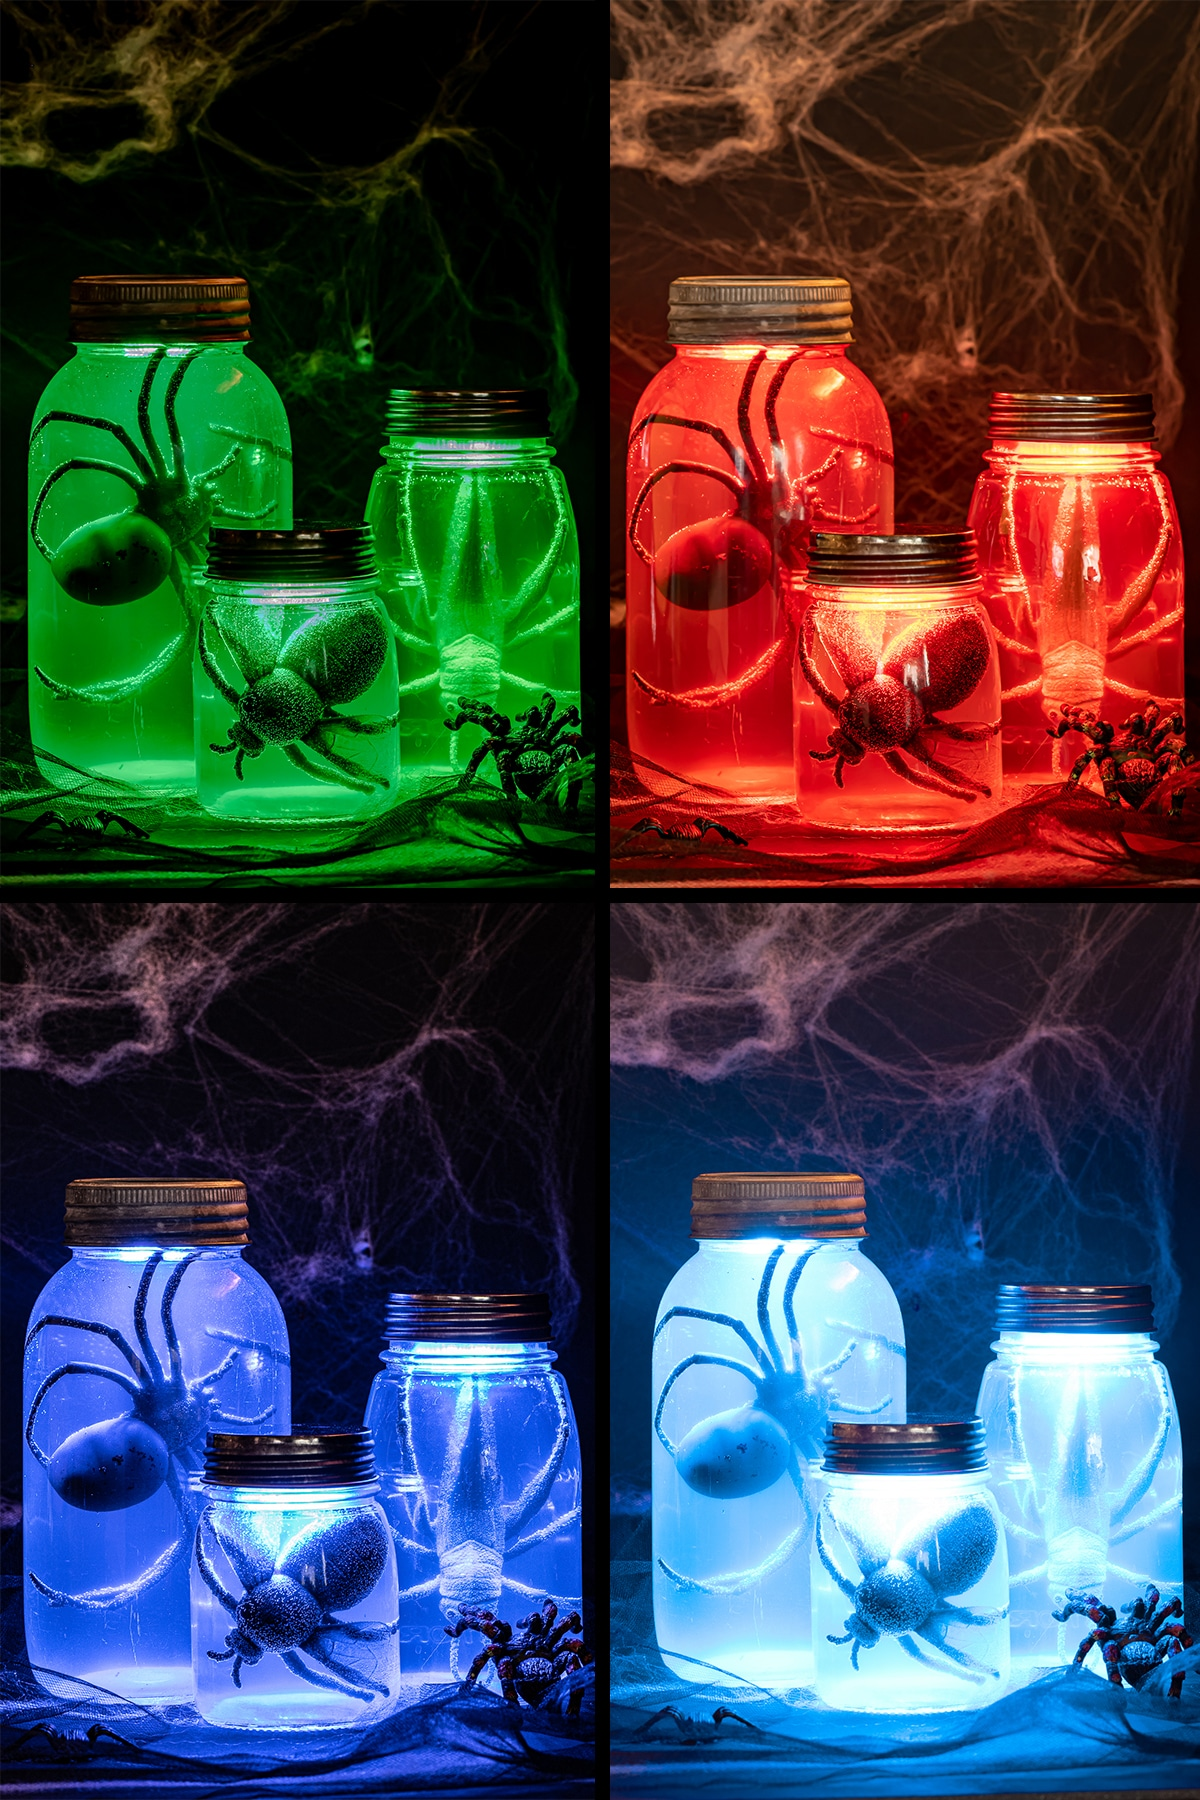 a four panel photograph showing 3 fake specimen jars with large bugs, t glowing different colors from green, red, purple and bright blue.